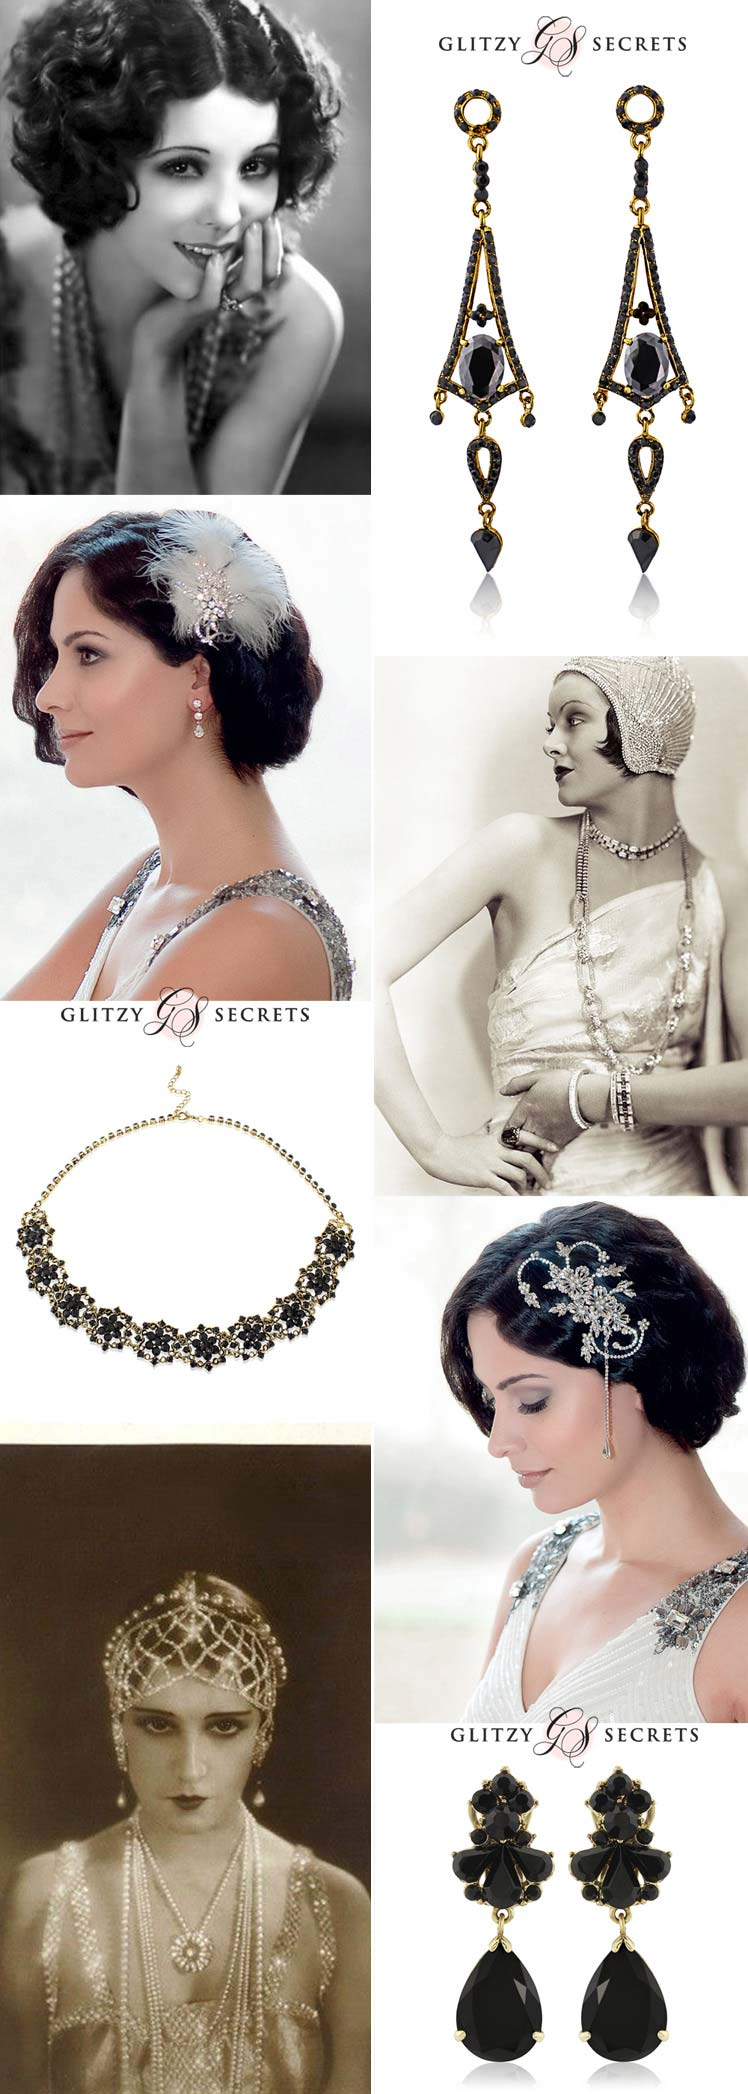 The history of 1920s jewellery design